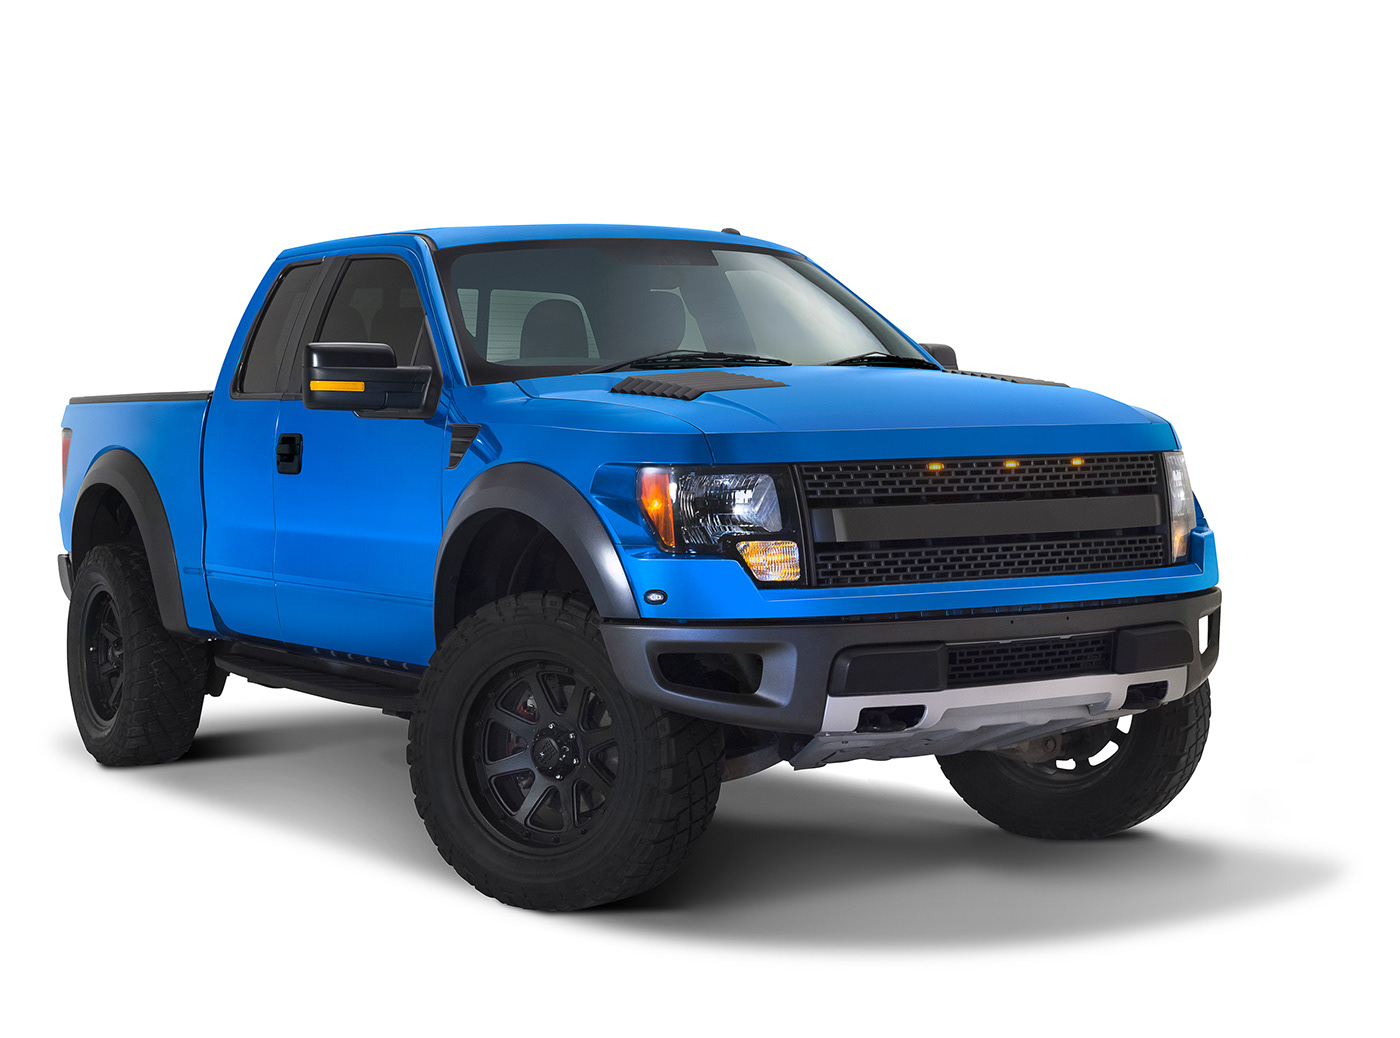 Image may contain: car, truck and blue